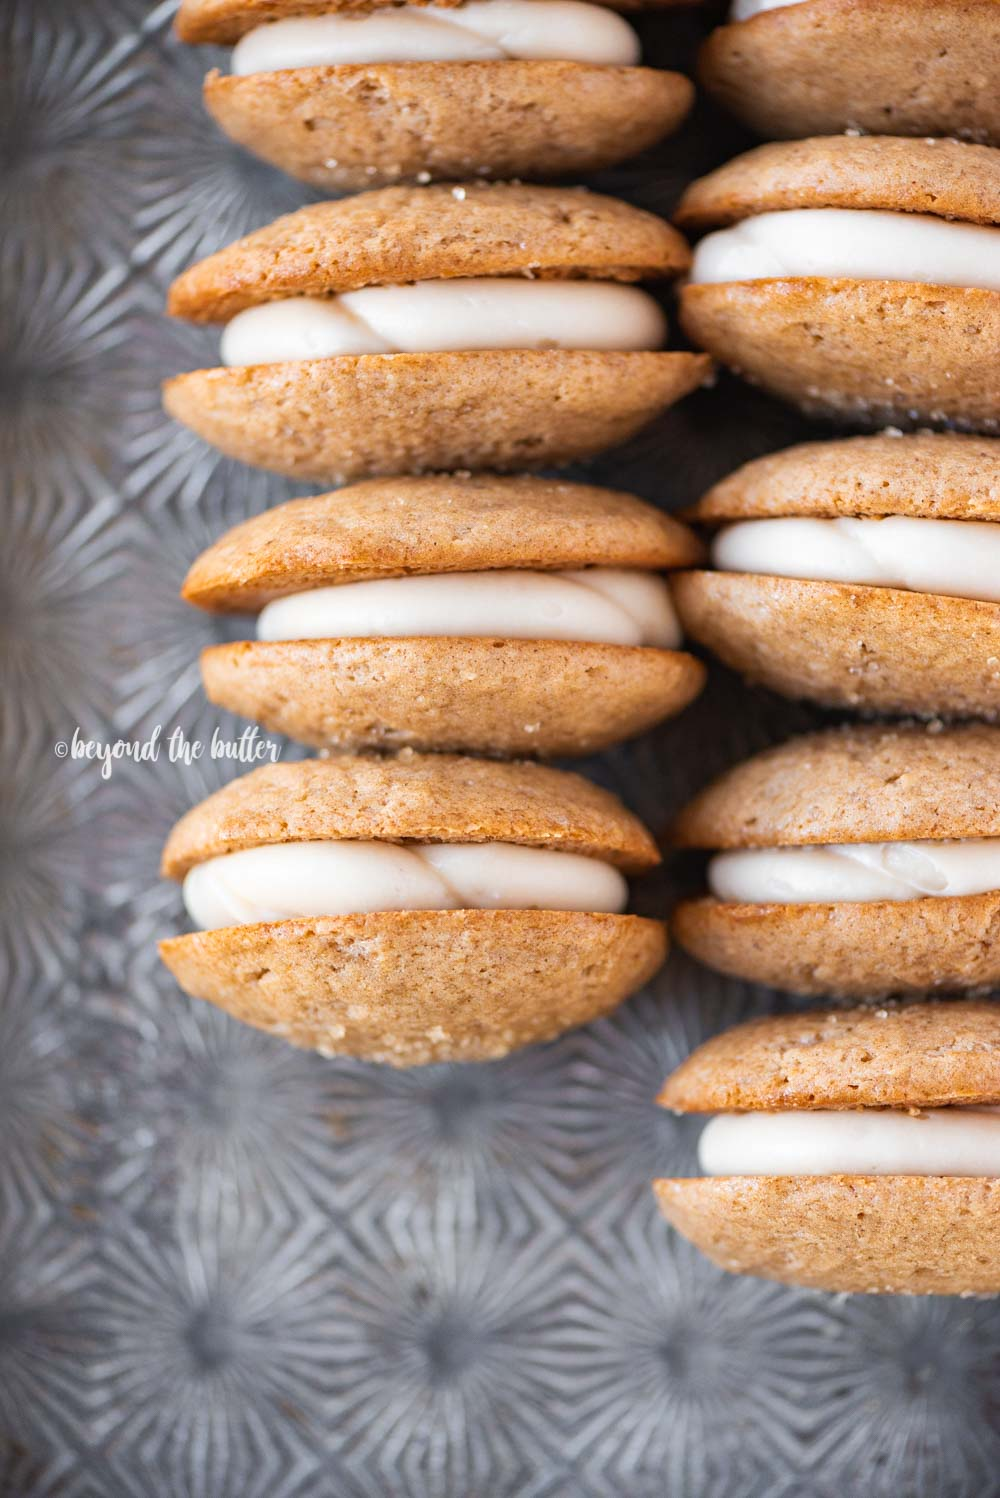 Homemade Apple Cider Whoopie Pies | All Images © Beyond the Butter, LLC